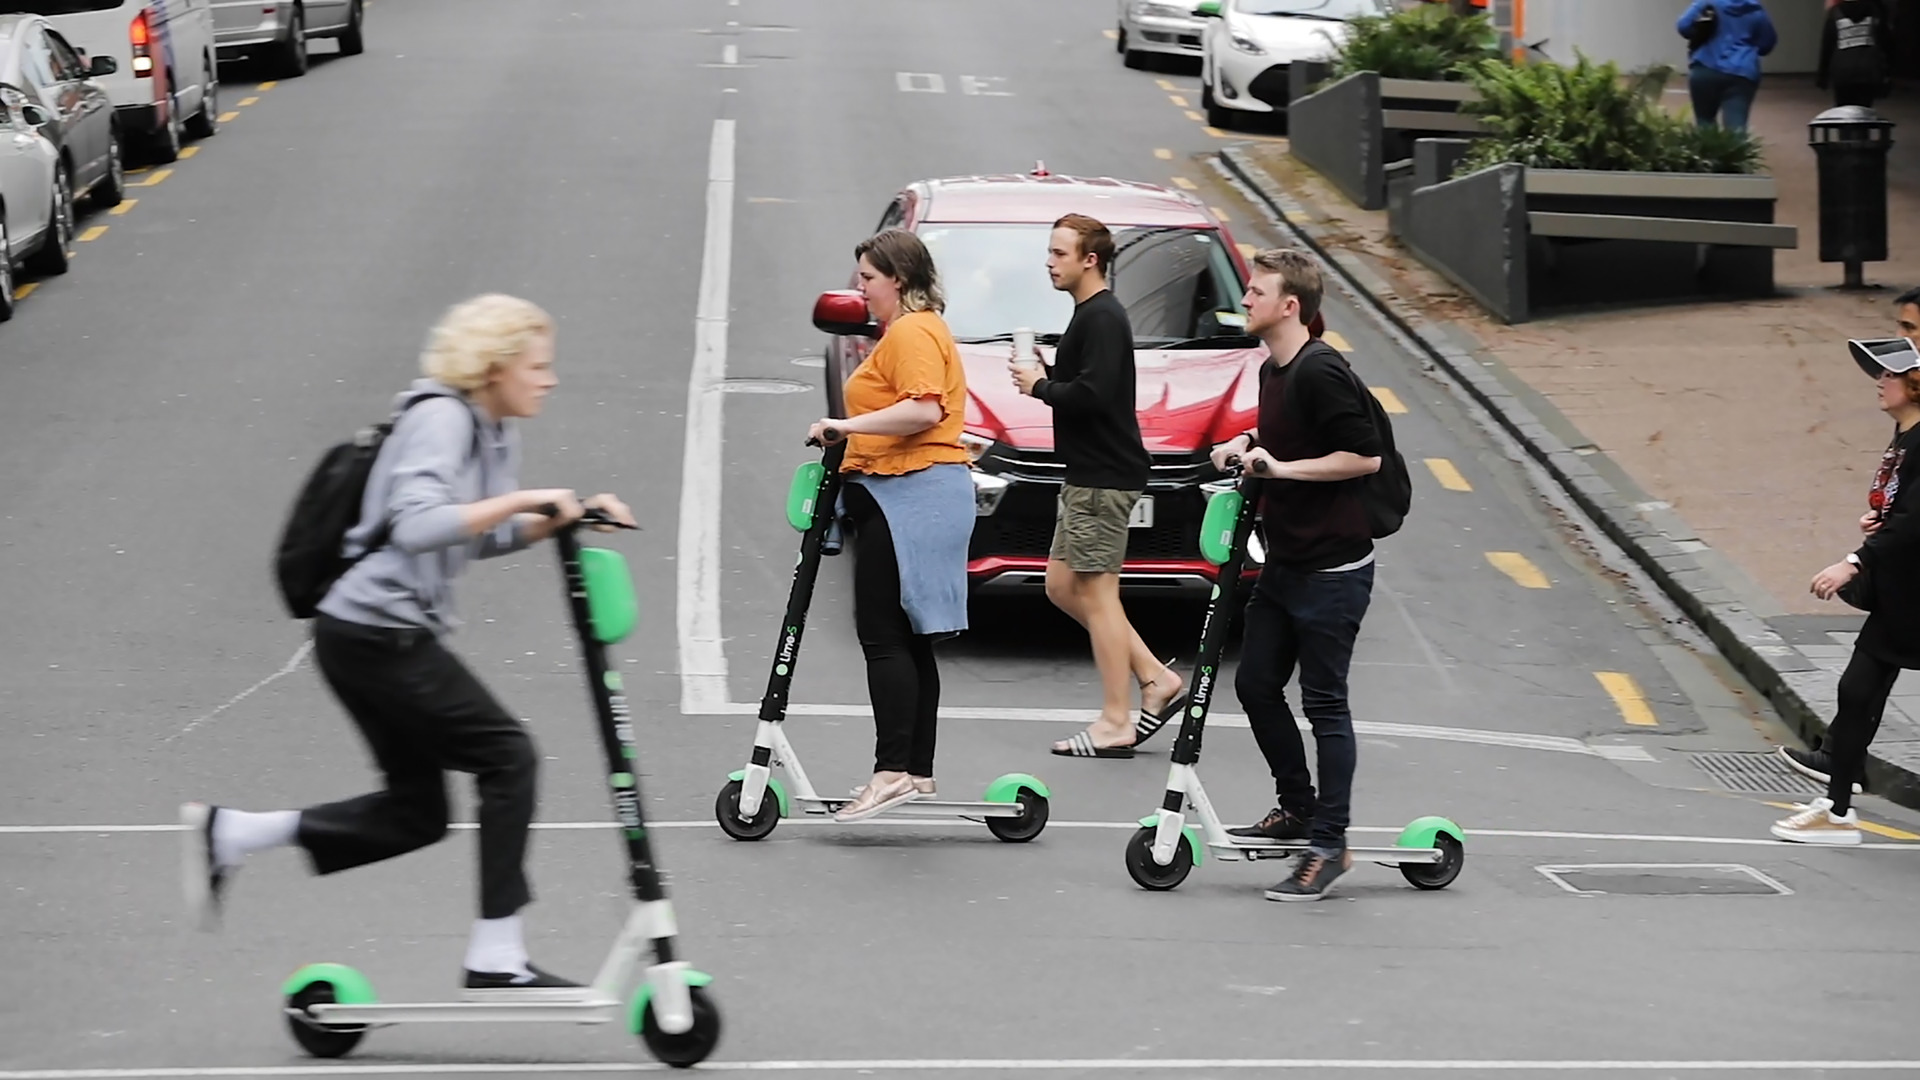 Lime scooters: All the answers one needs for the latest transportation trend